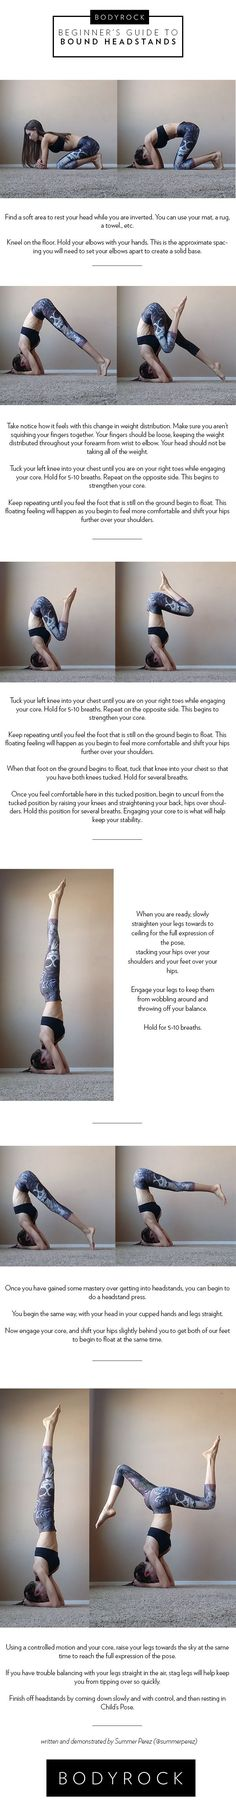 Beginner's Step by Step Guide to Headstands